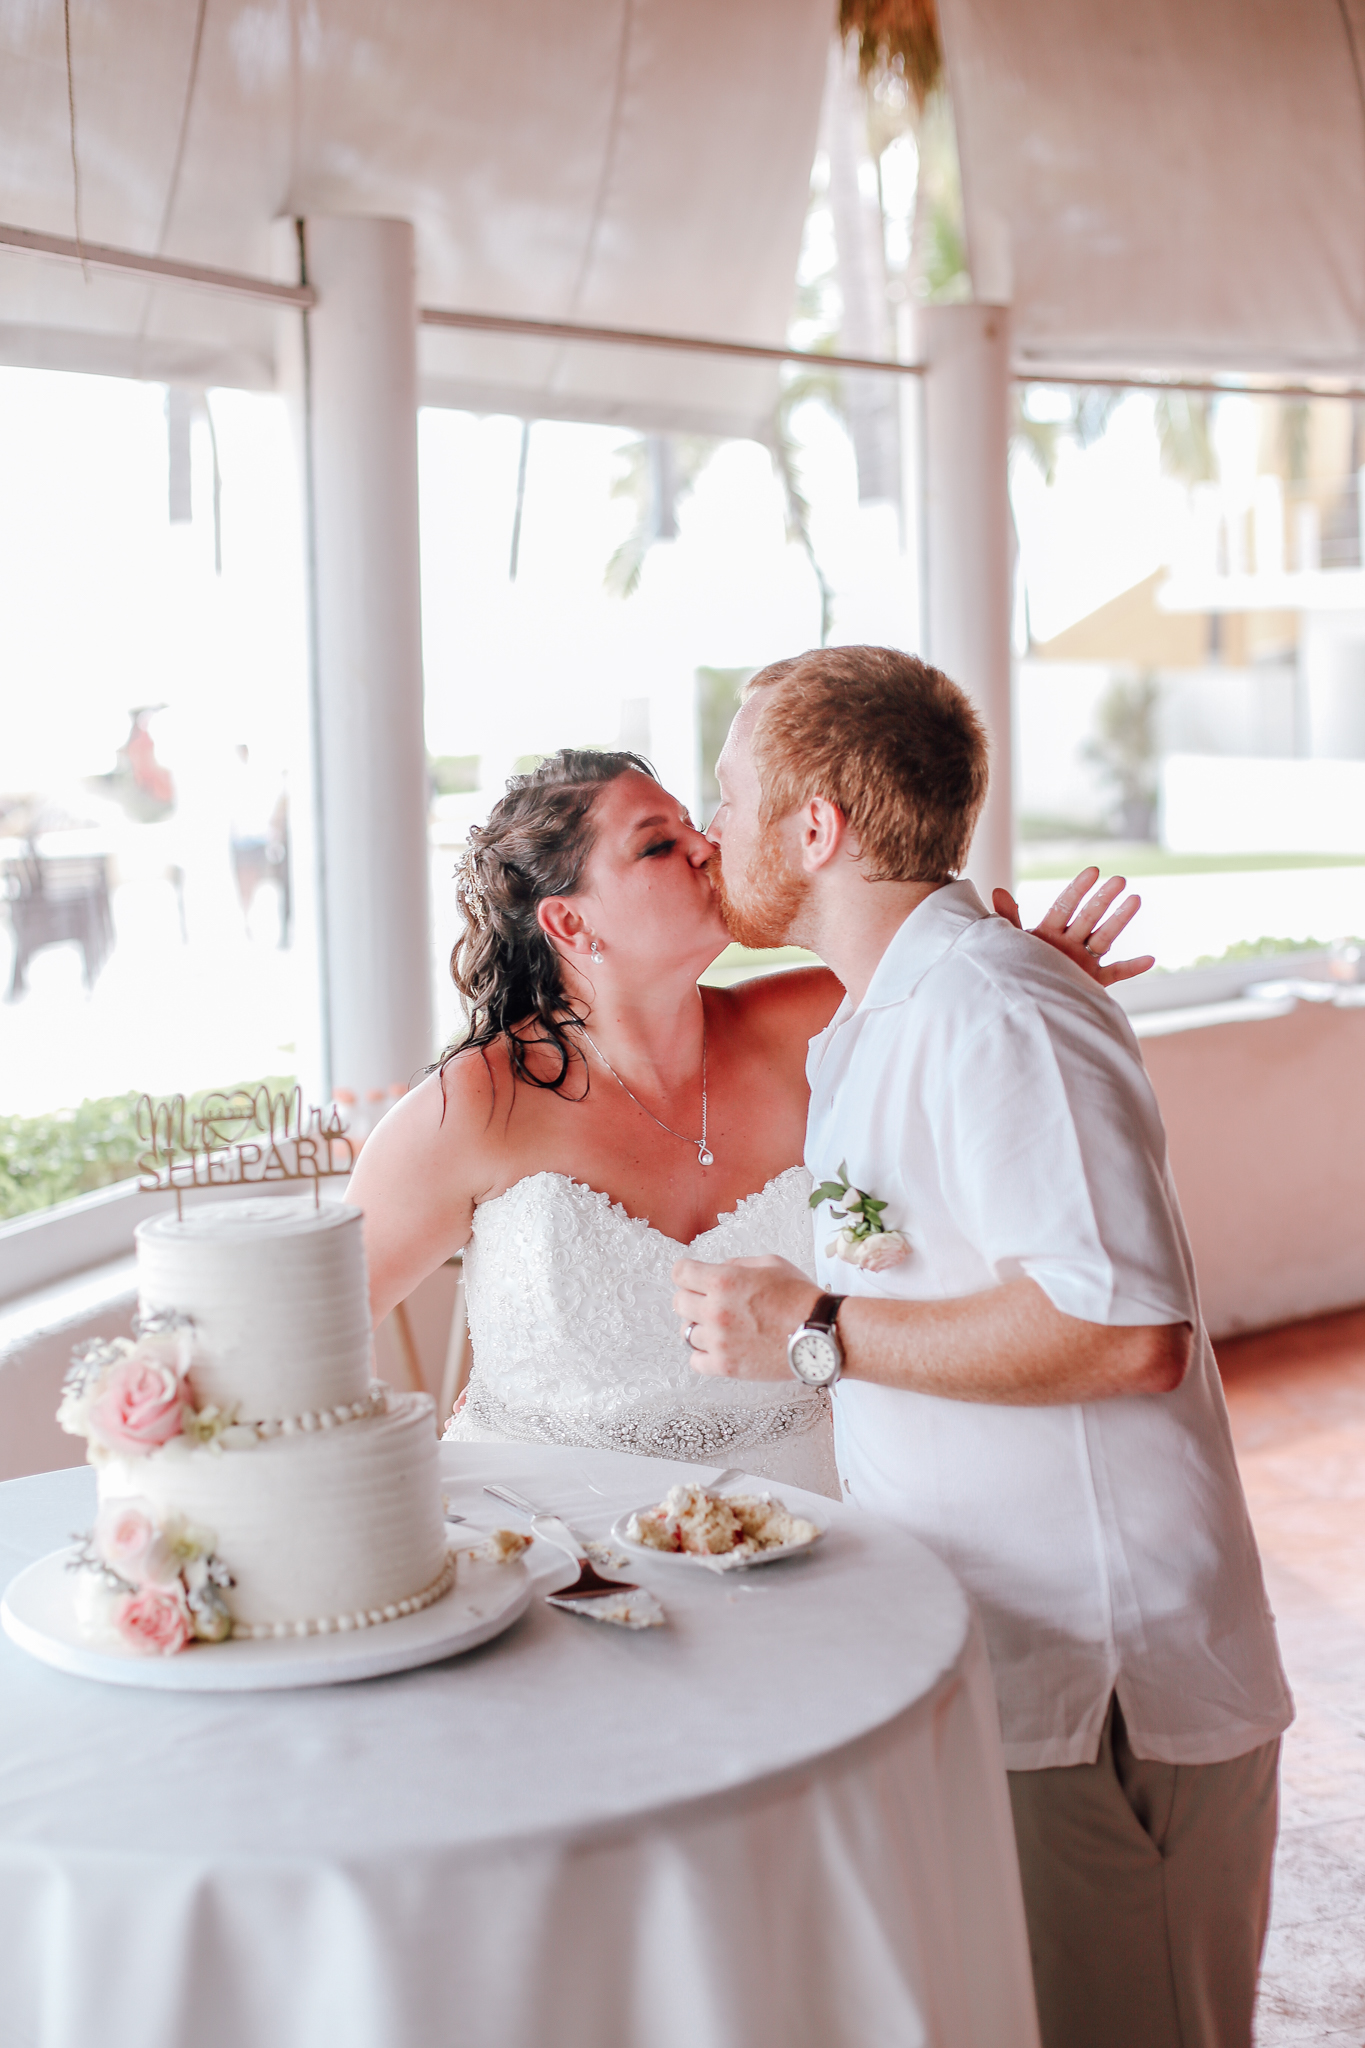 Tiffany and Ryan - Puerto Vallarta Wedding Photographer - 78.jpg